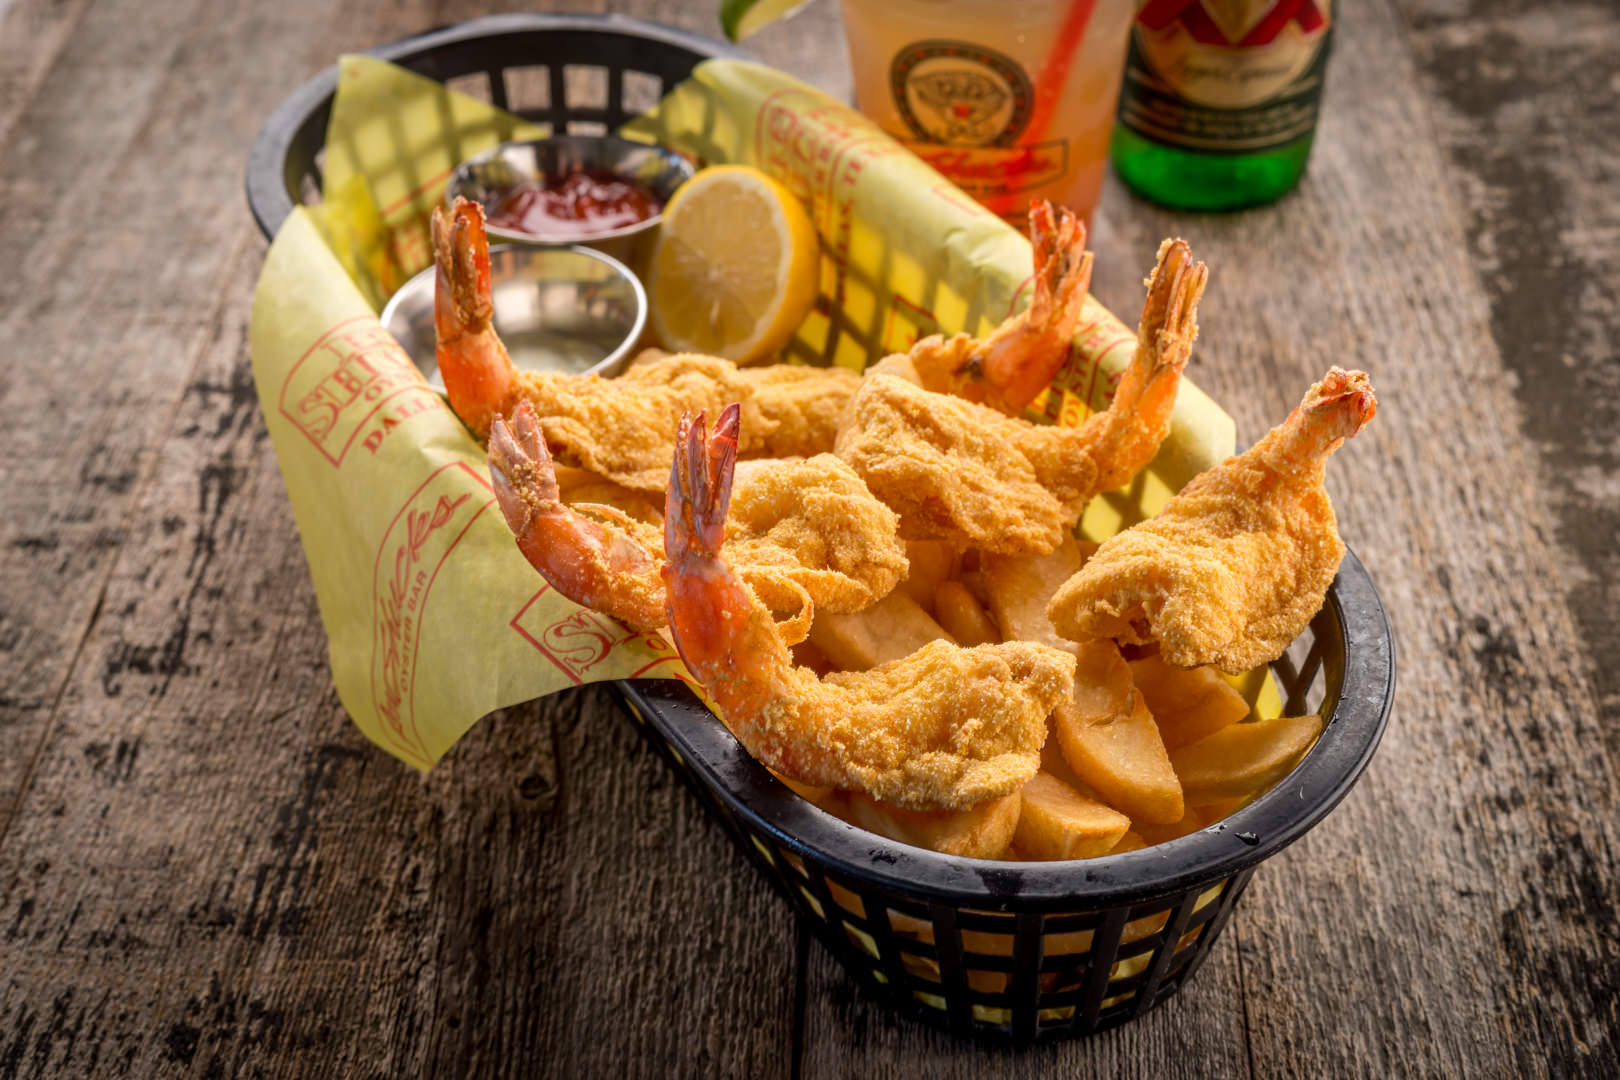 Shrimp Basket Aw Shucks - Theresa Fernandez Photography | Dallas Food Photographer